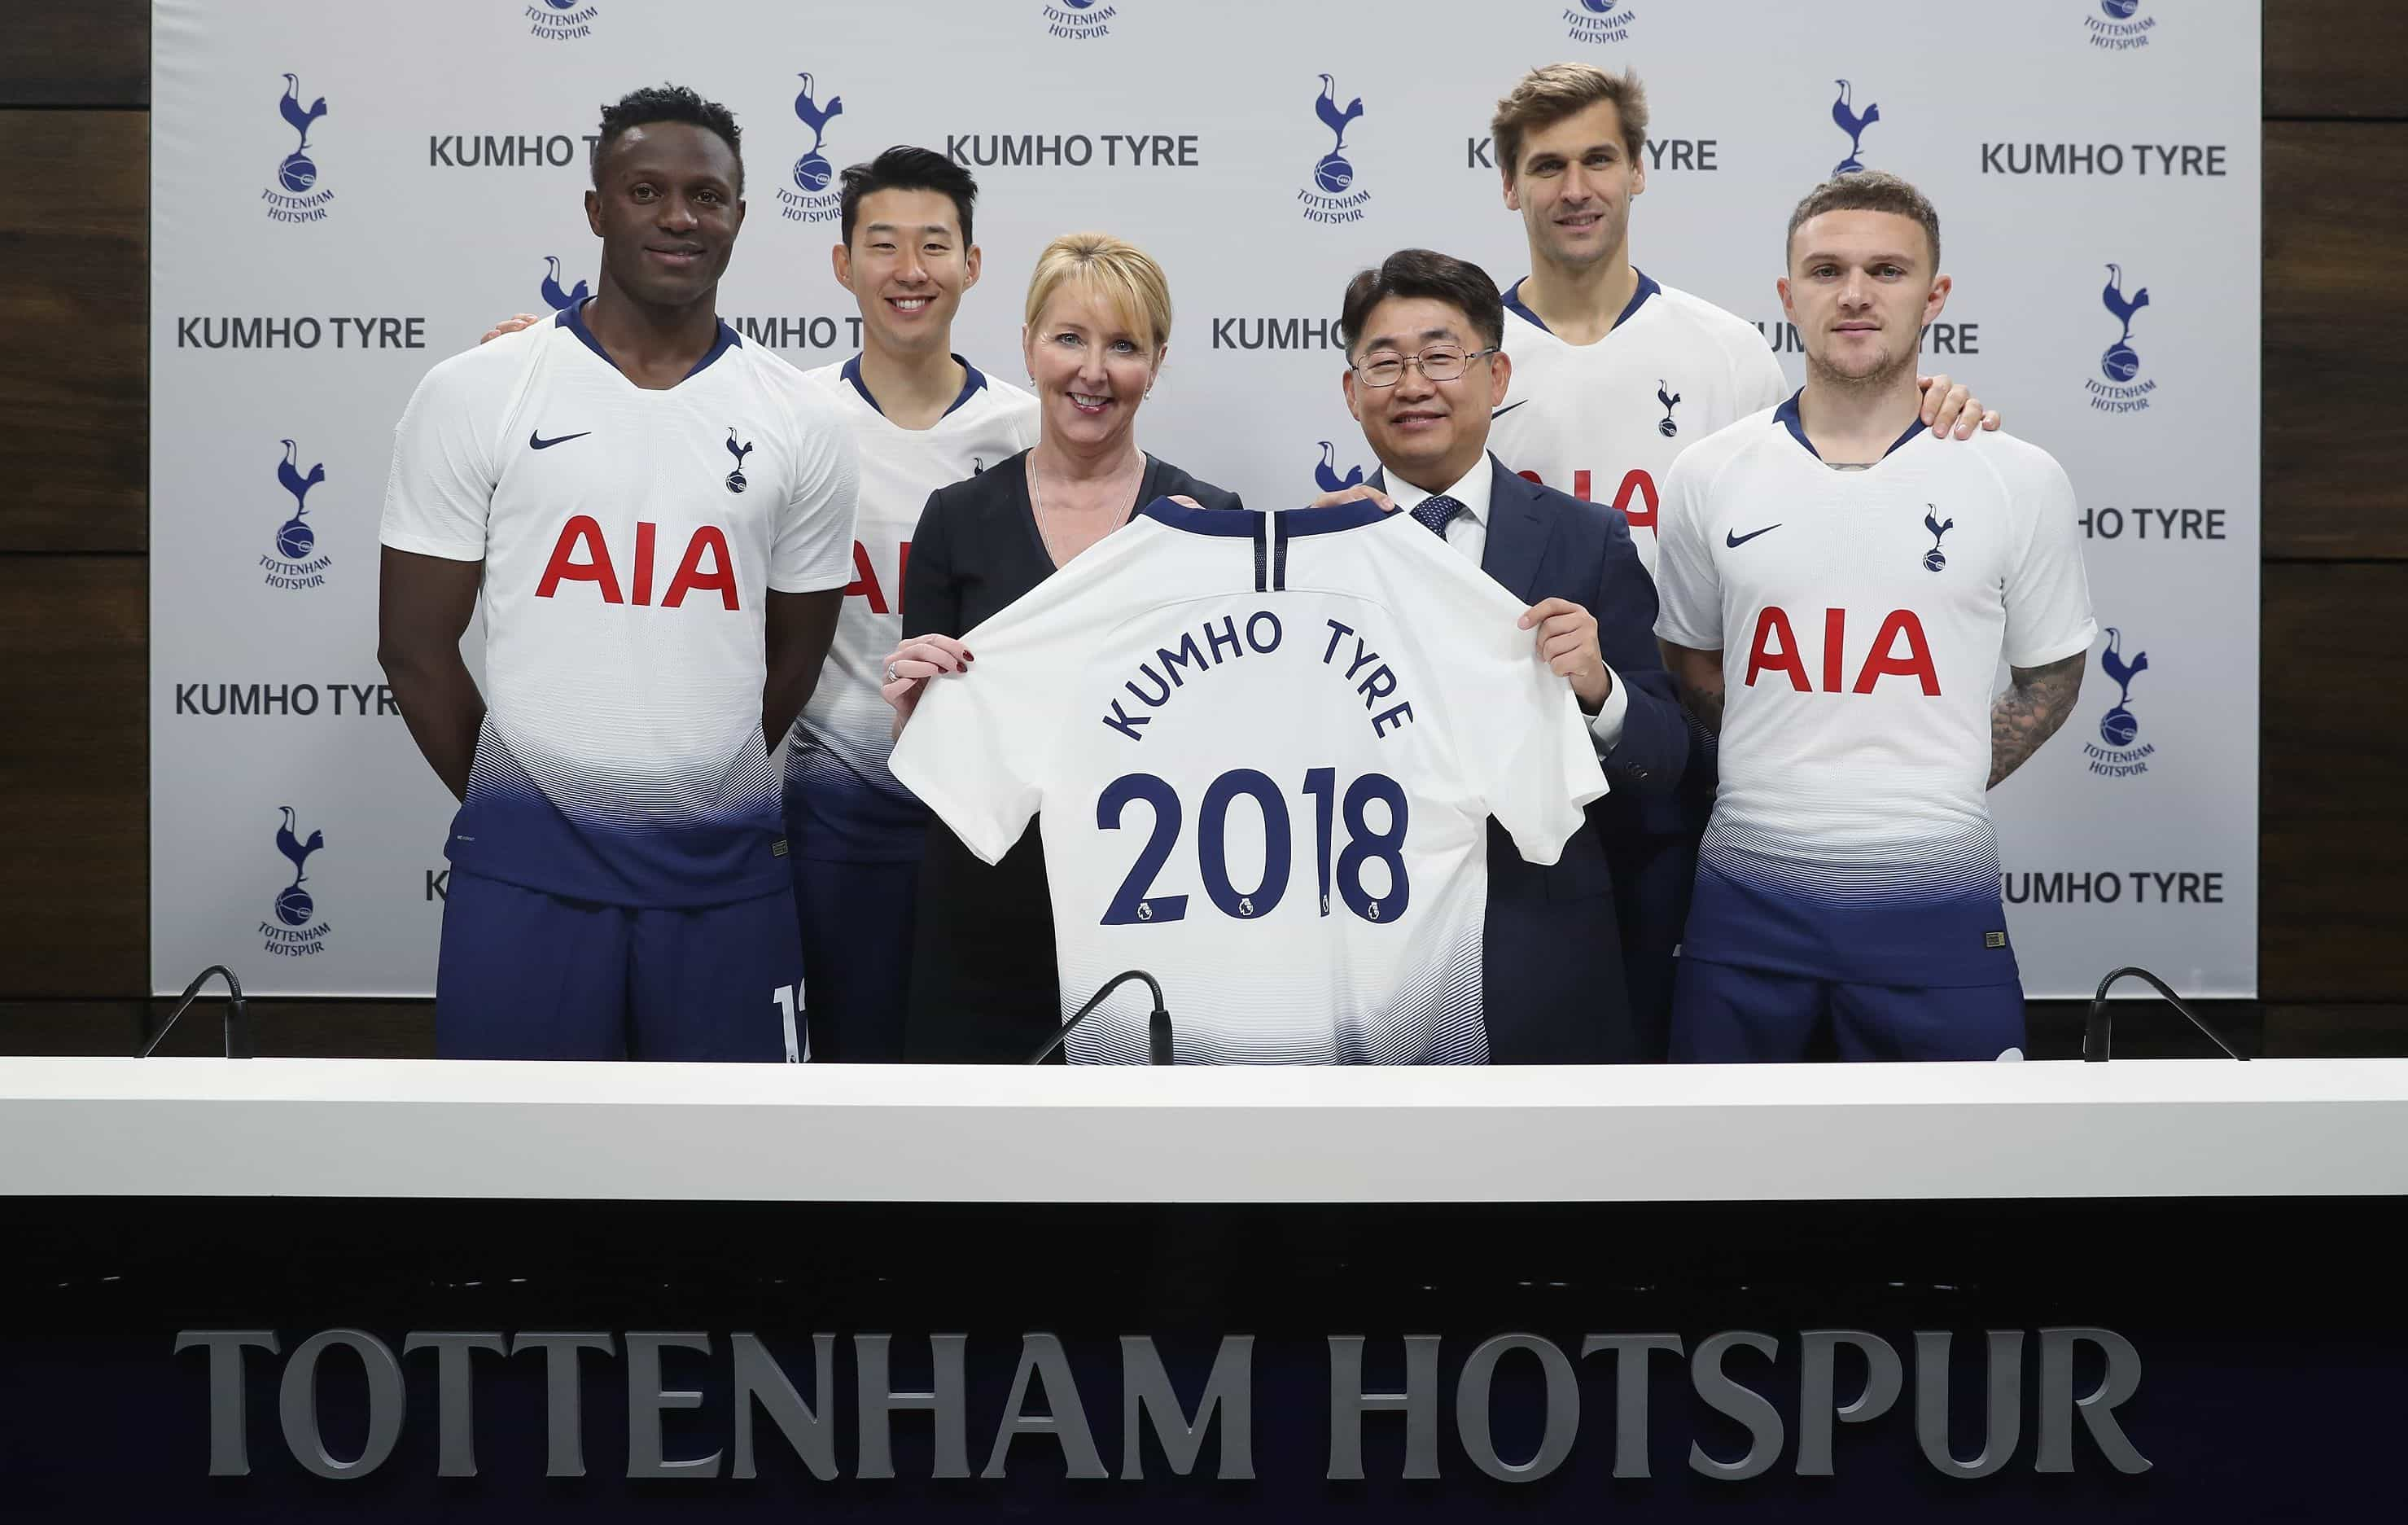 PR Tottenham Partnership localised